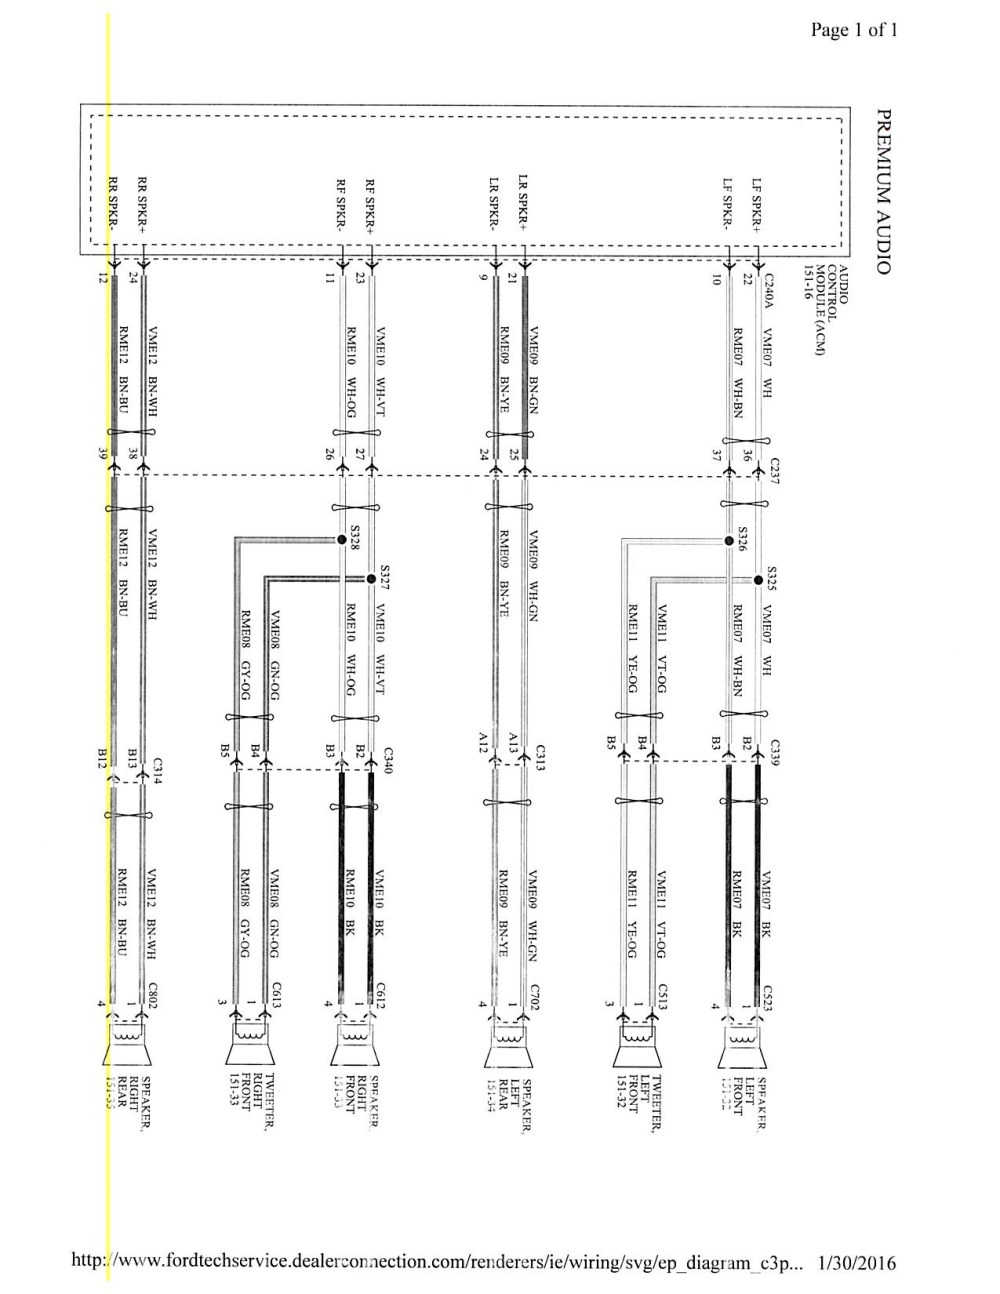 medium resolution of wrg 2570 ecoboost wiring diagram 1 6 ecoboost wiring diagram 2015 focus mk3 5 stereo wiring